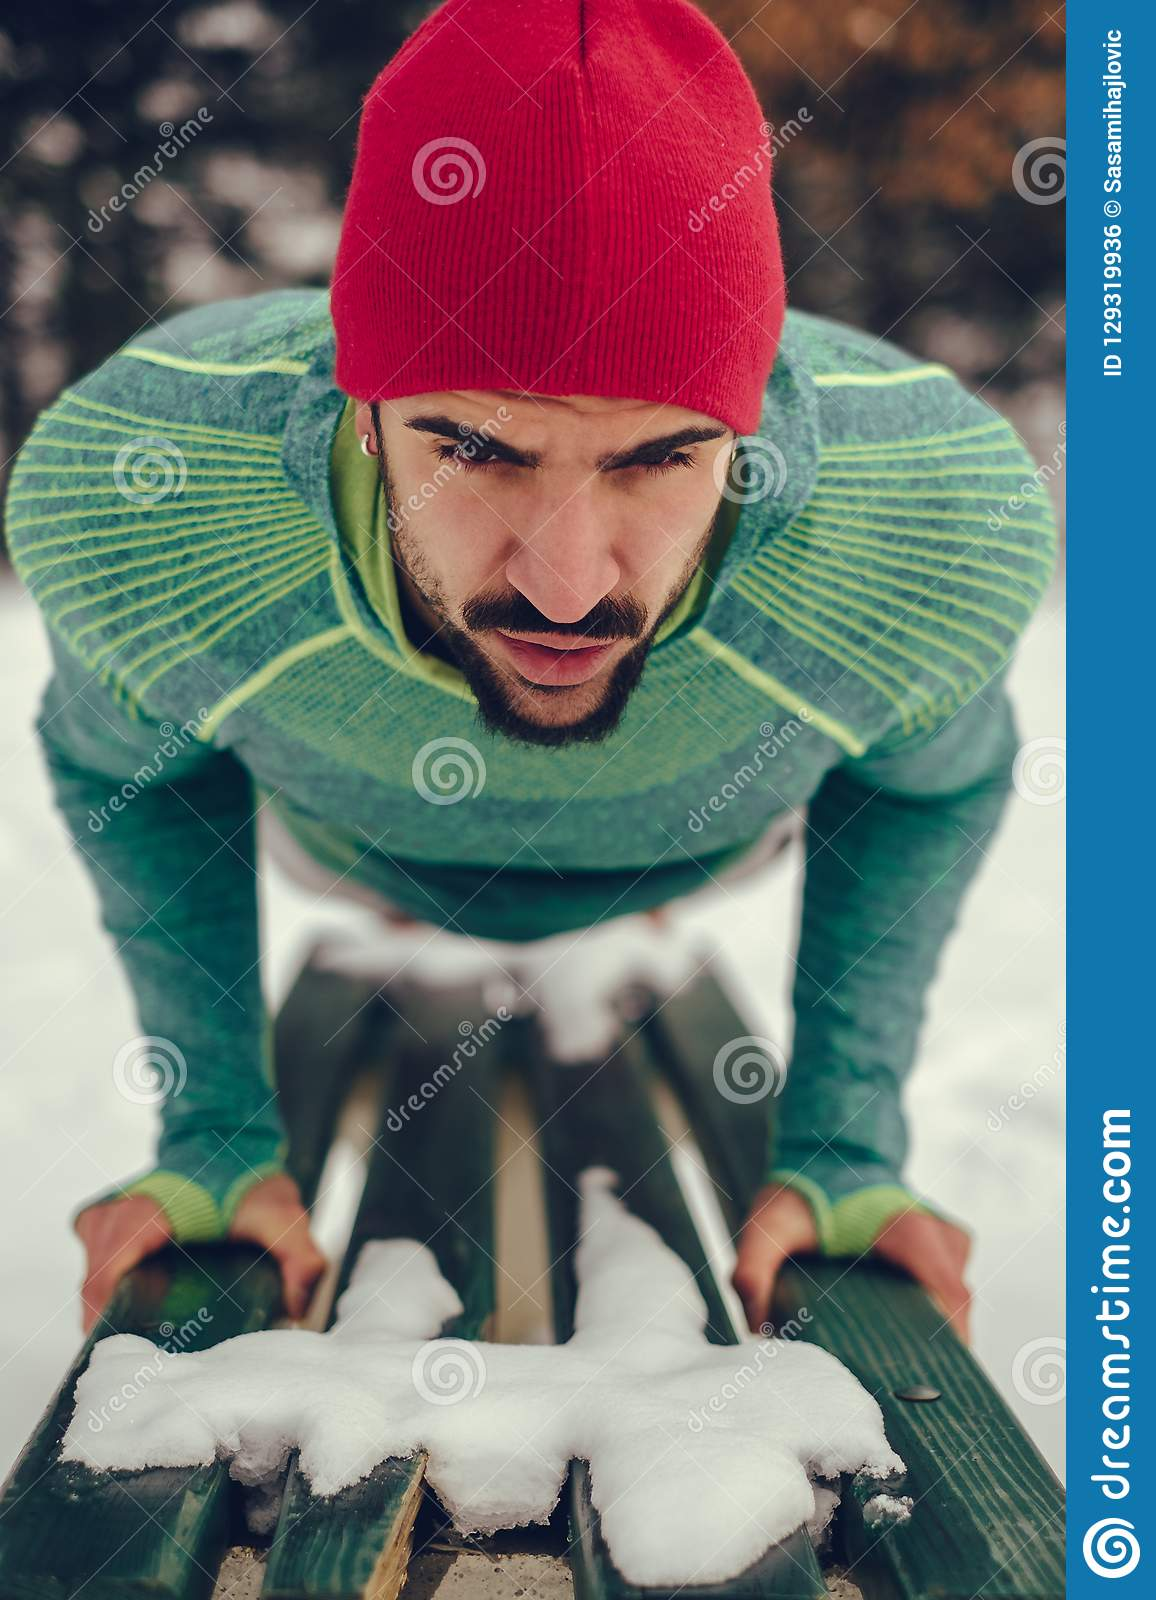 Man Doing Push Ups On A Park Bench In Winter Stock Photo - Image of ... 500c4caf9c6